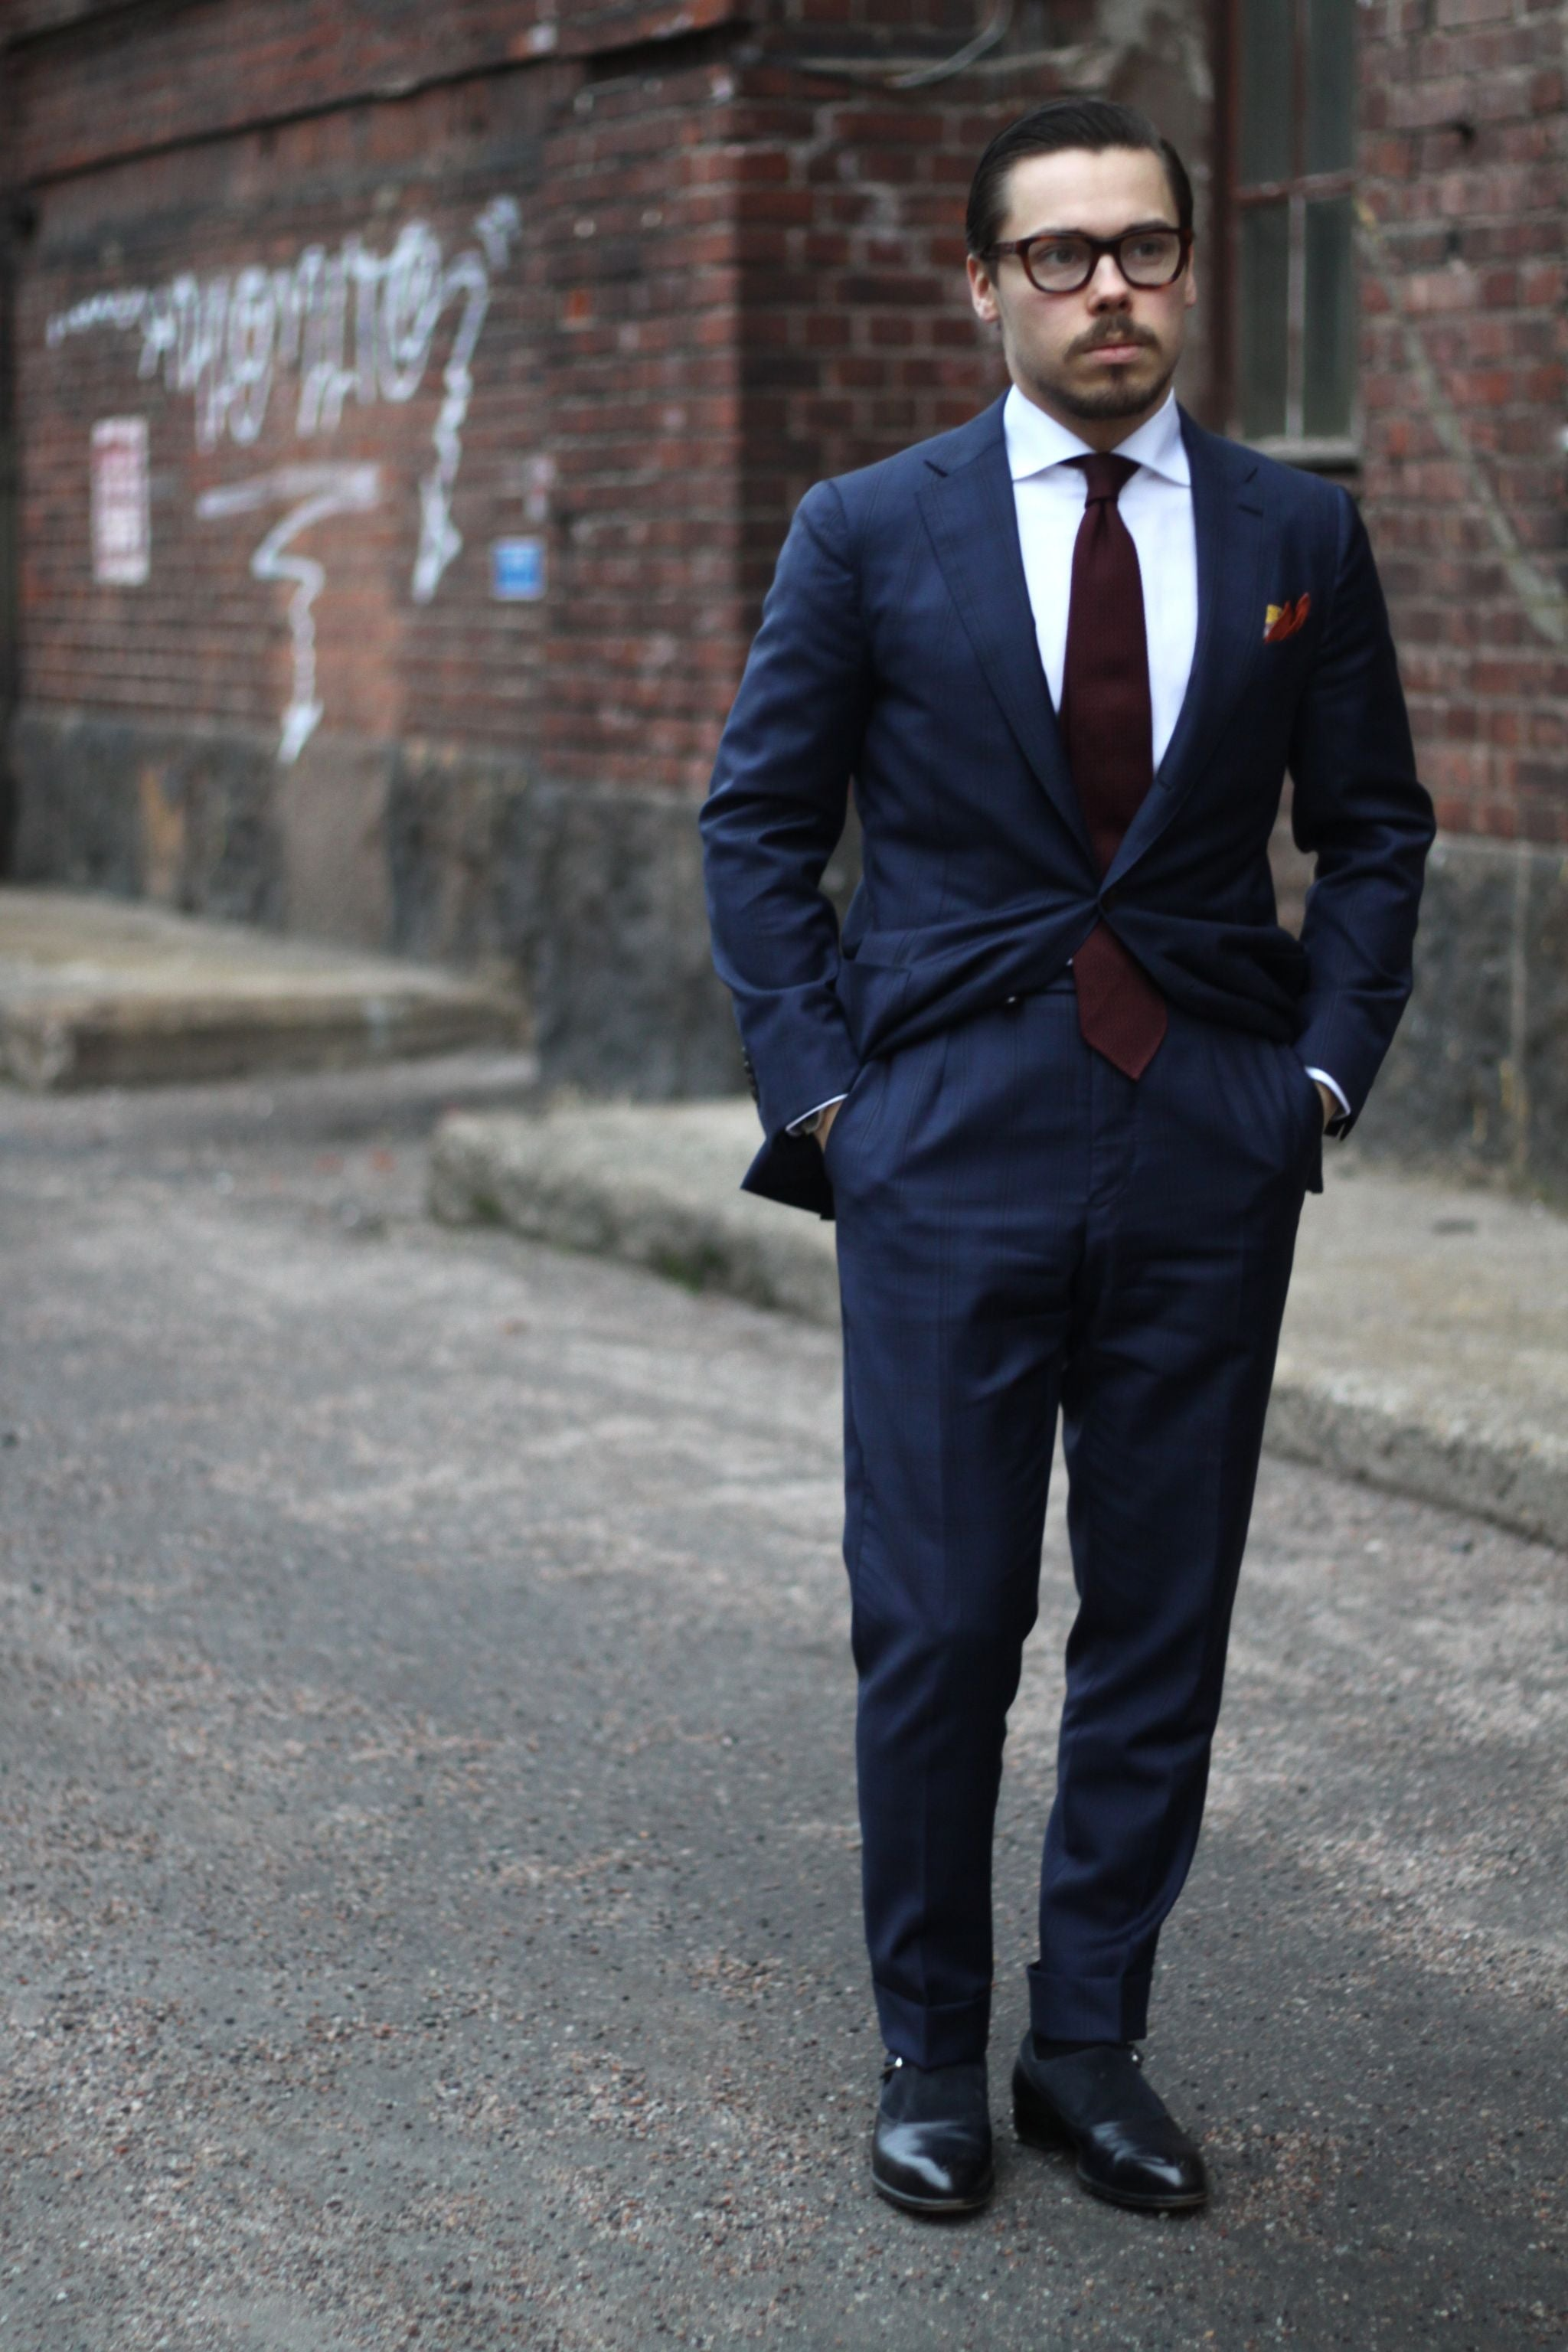 Dark blue suit with white shirt and burgundy tie is classic business attire.